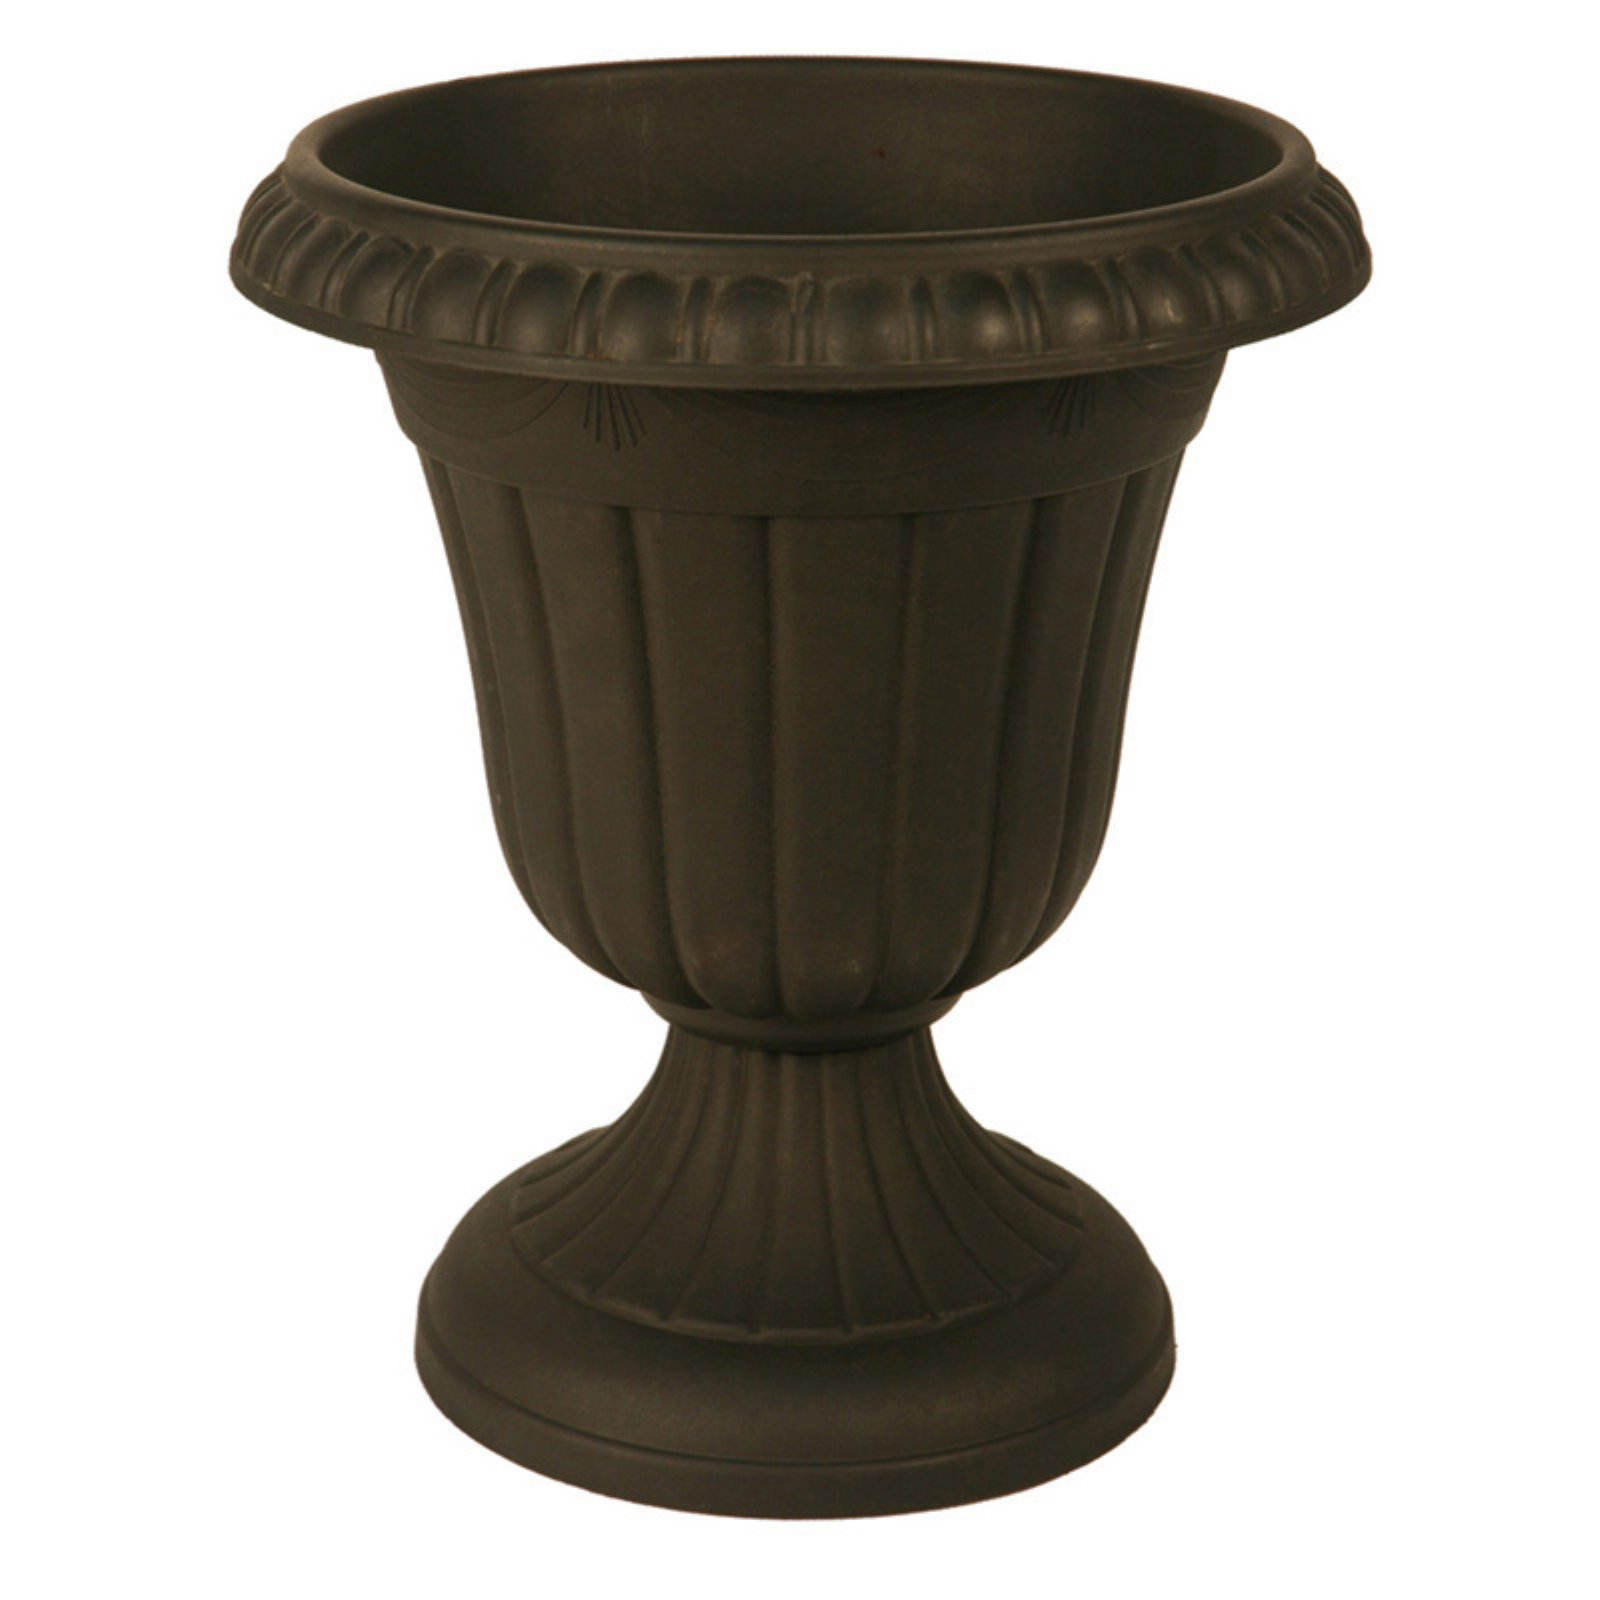 Arcadia PSW Traditional Plastic Urn Planter by Arcadia Garden Products